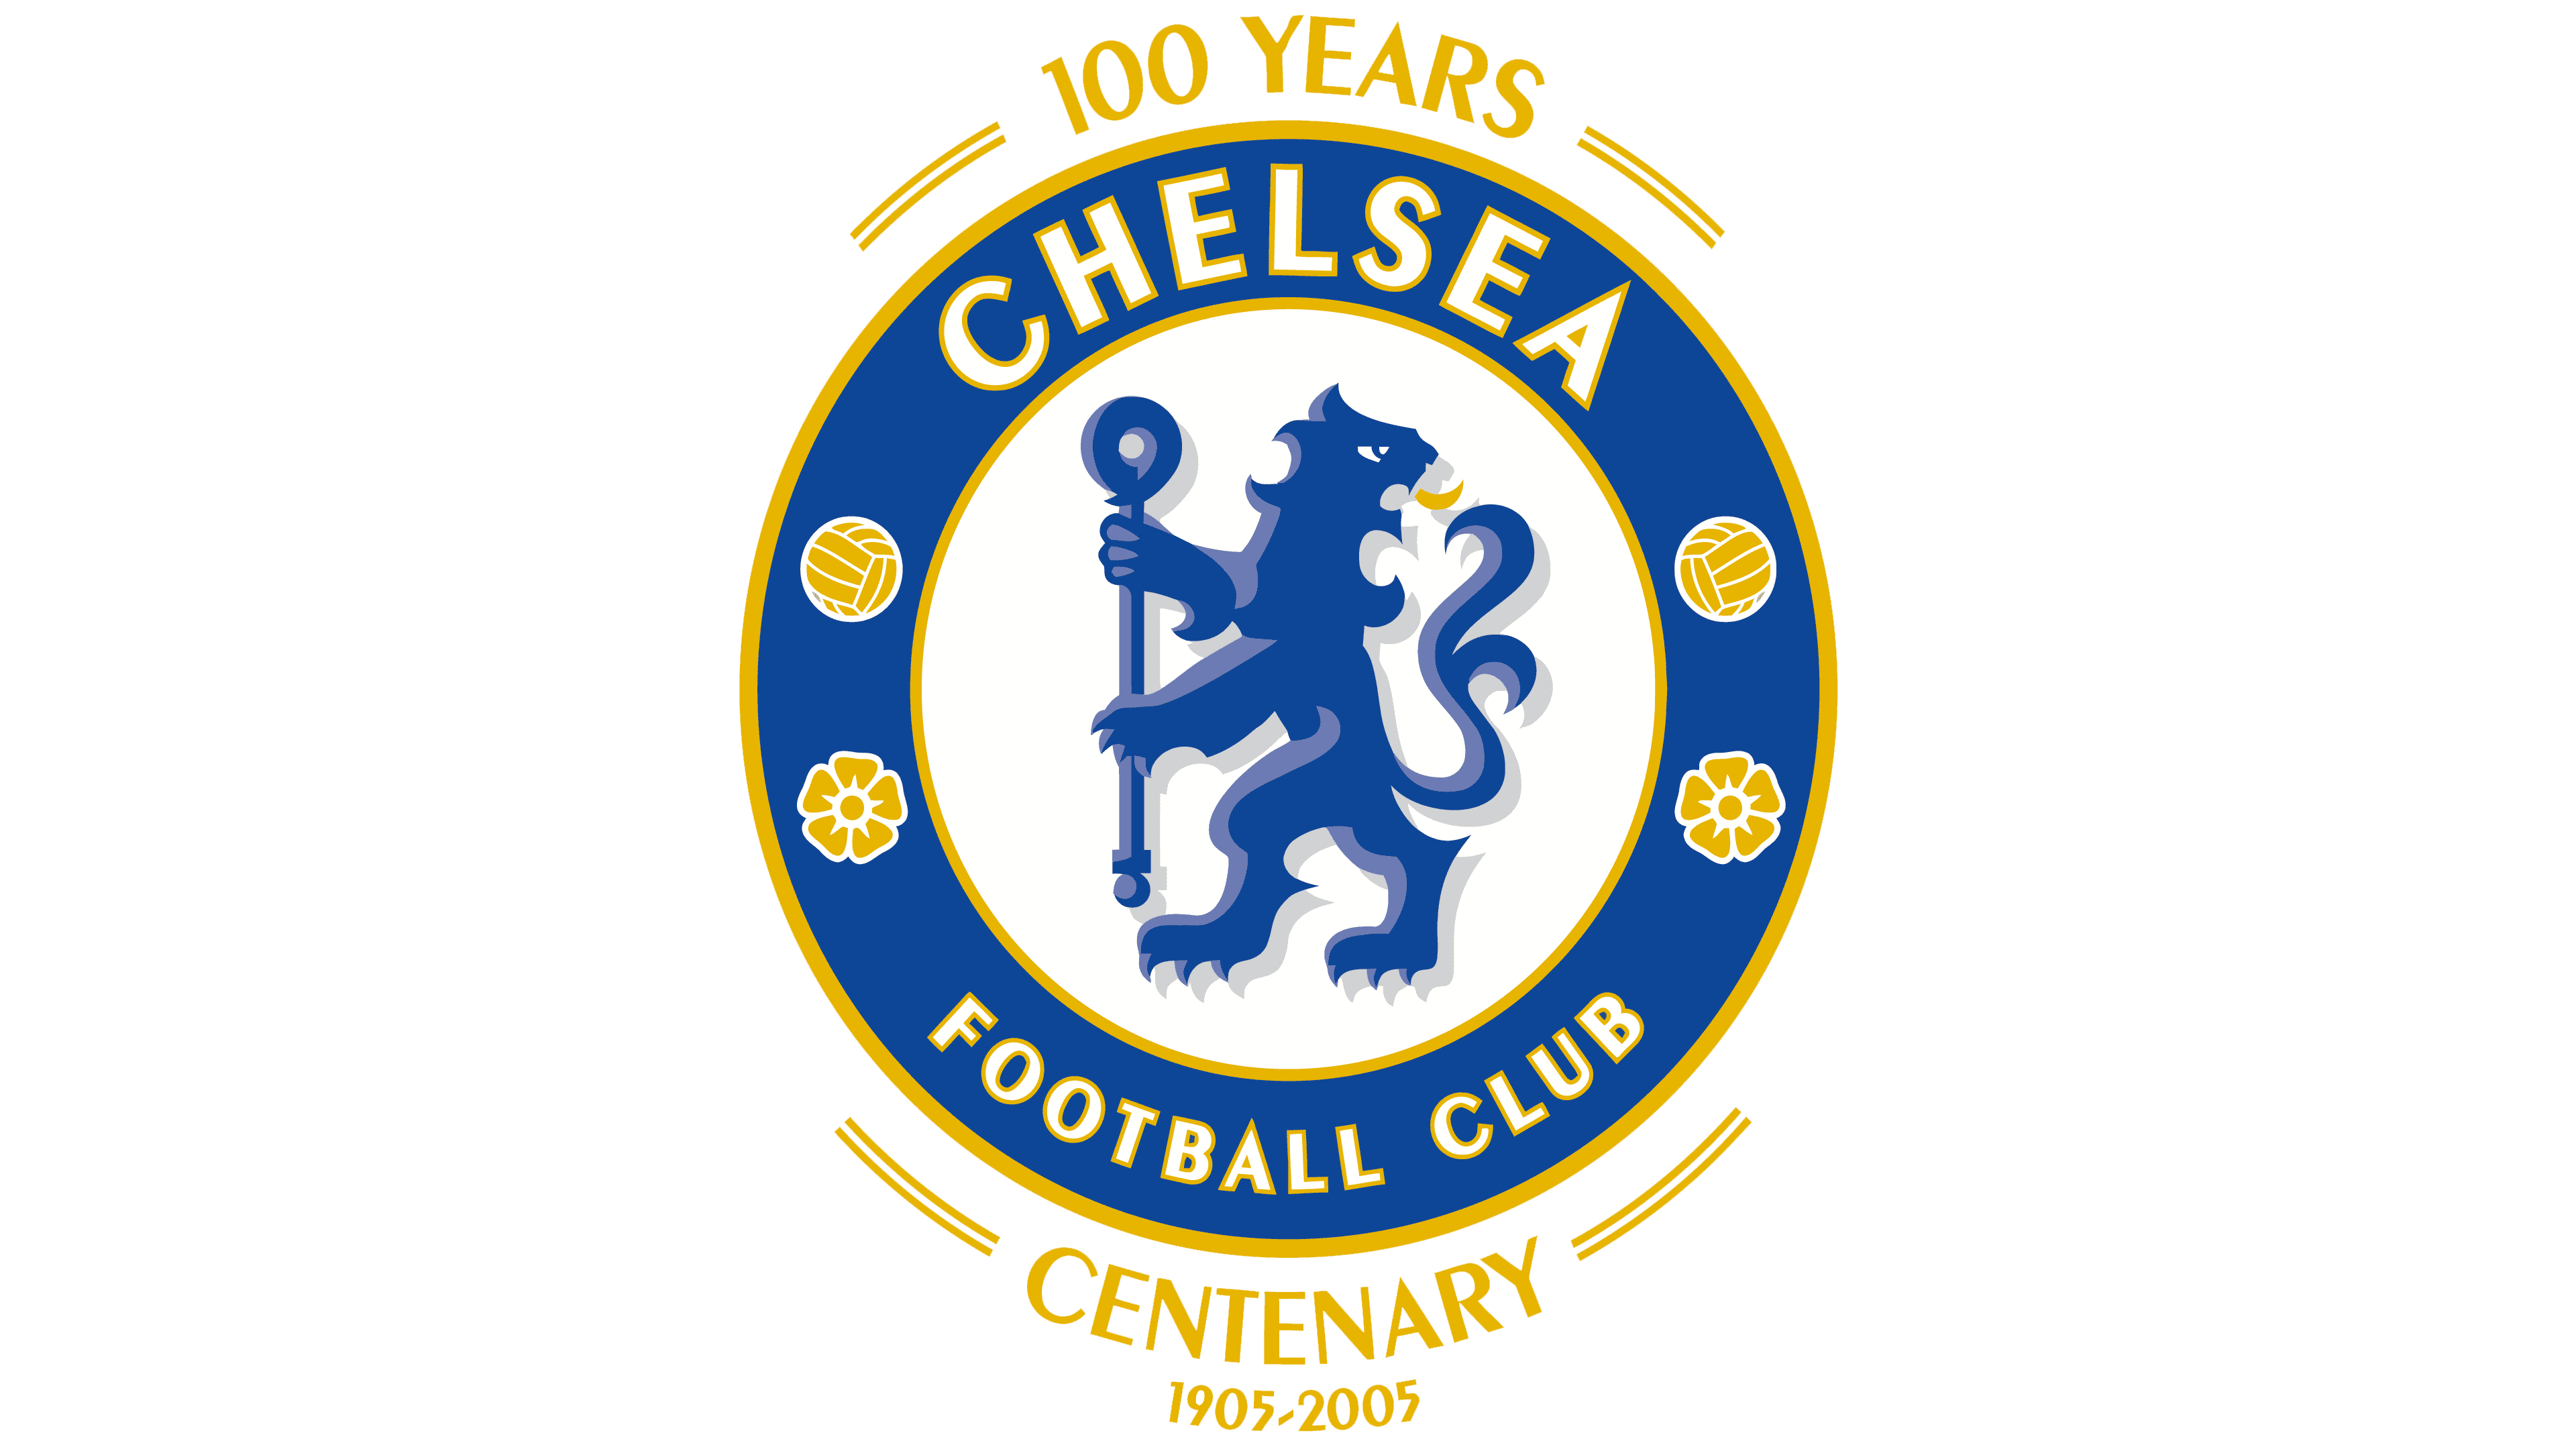 Chelsea Logo History The Most Famous Brands And Company Logos In The World